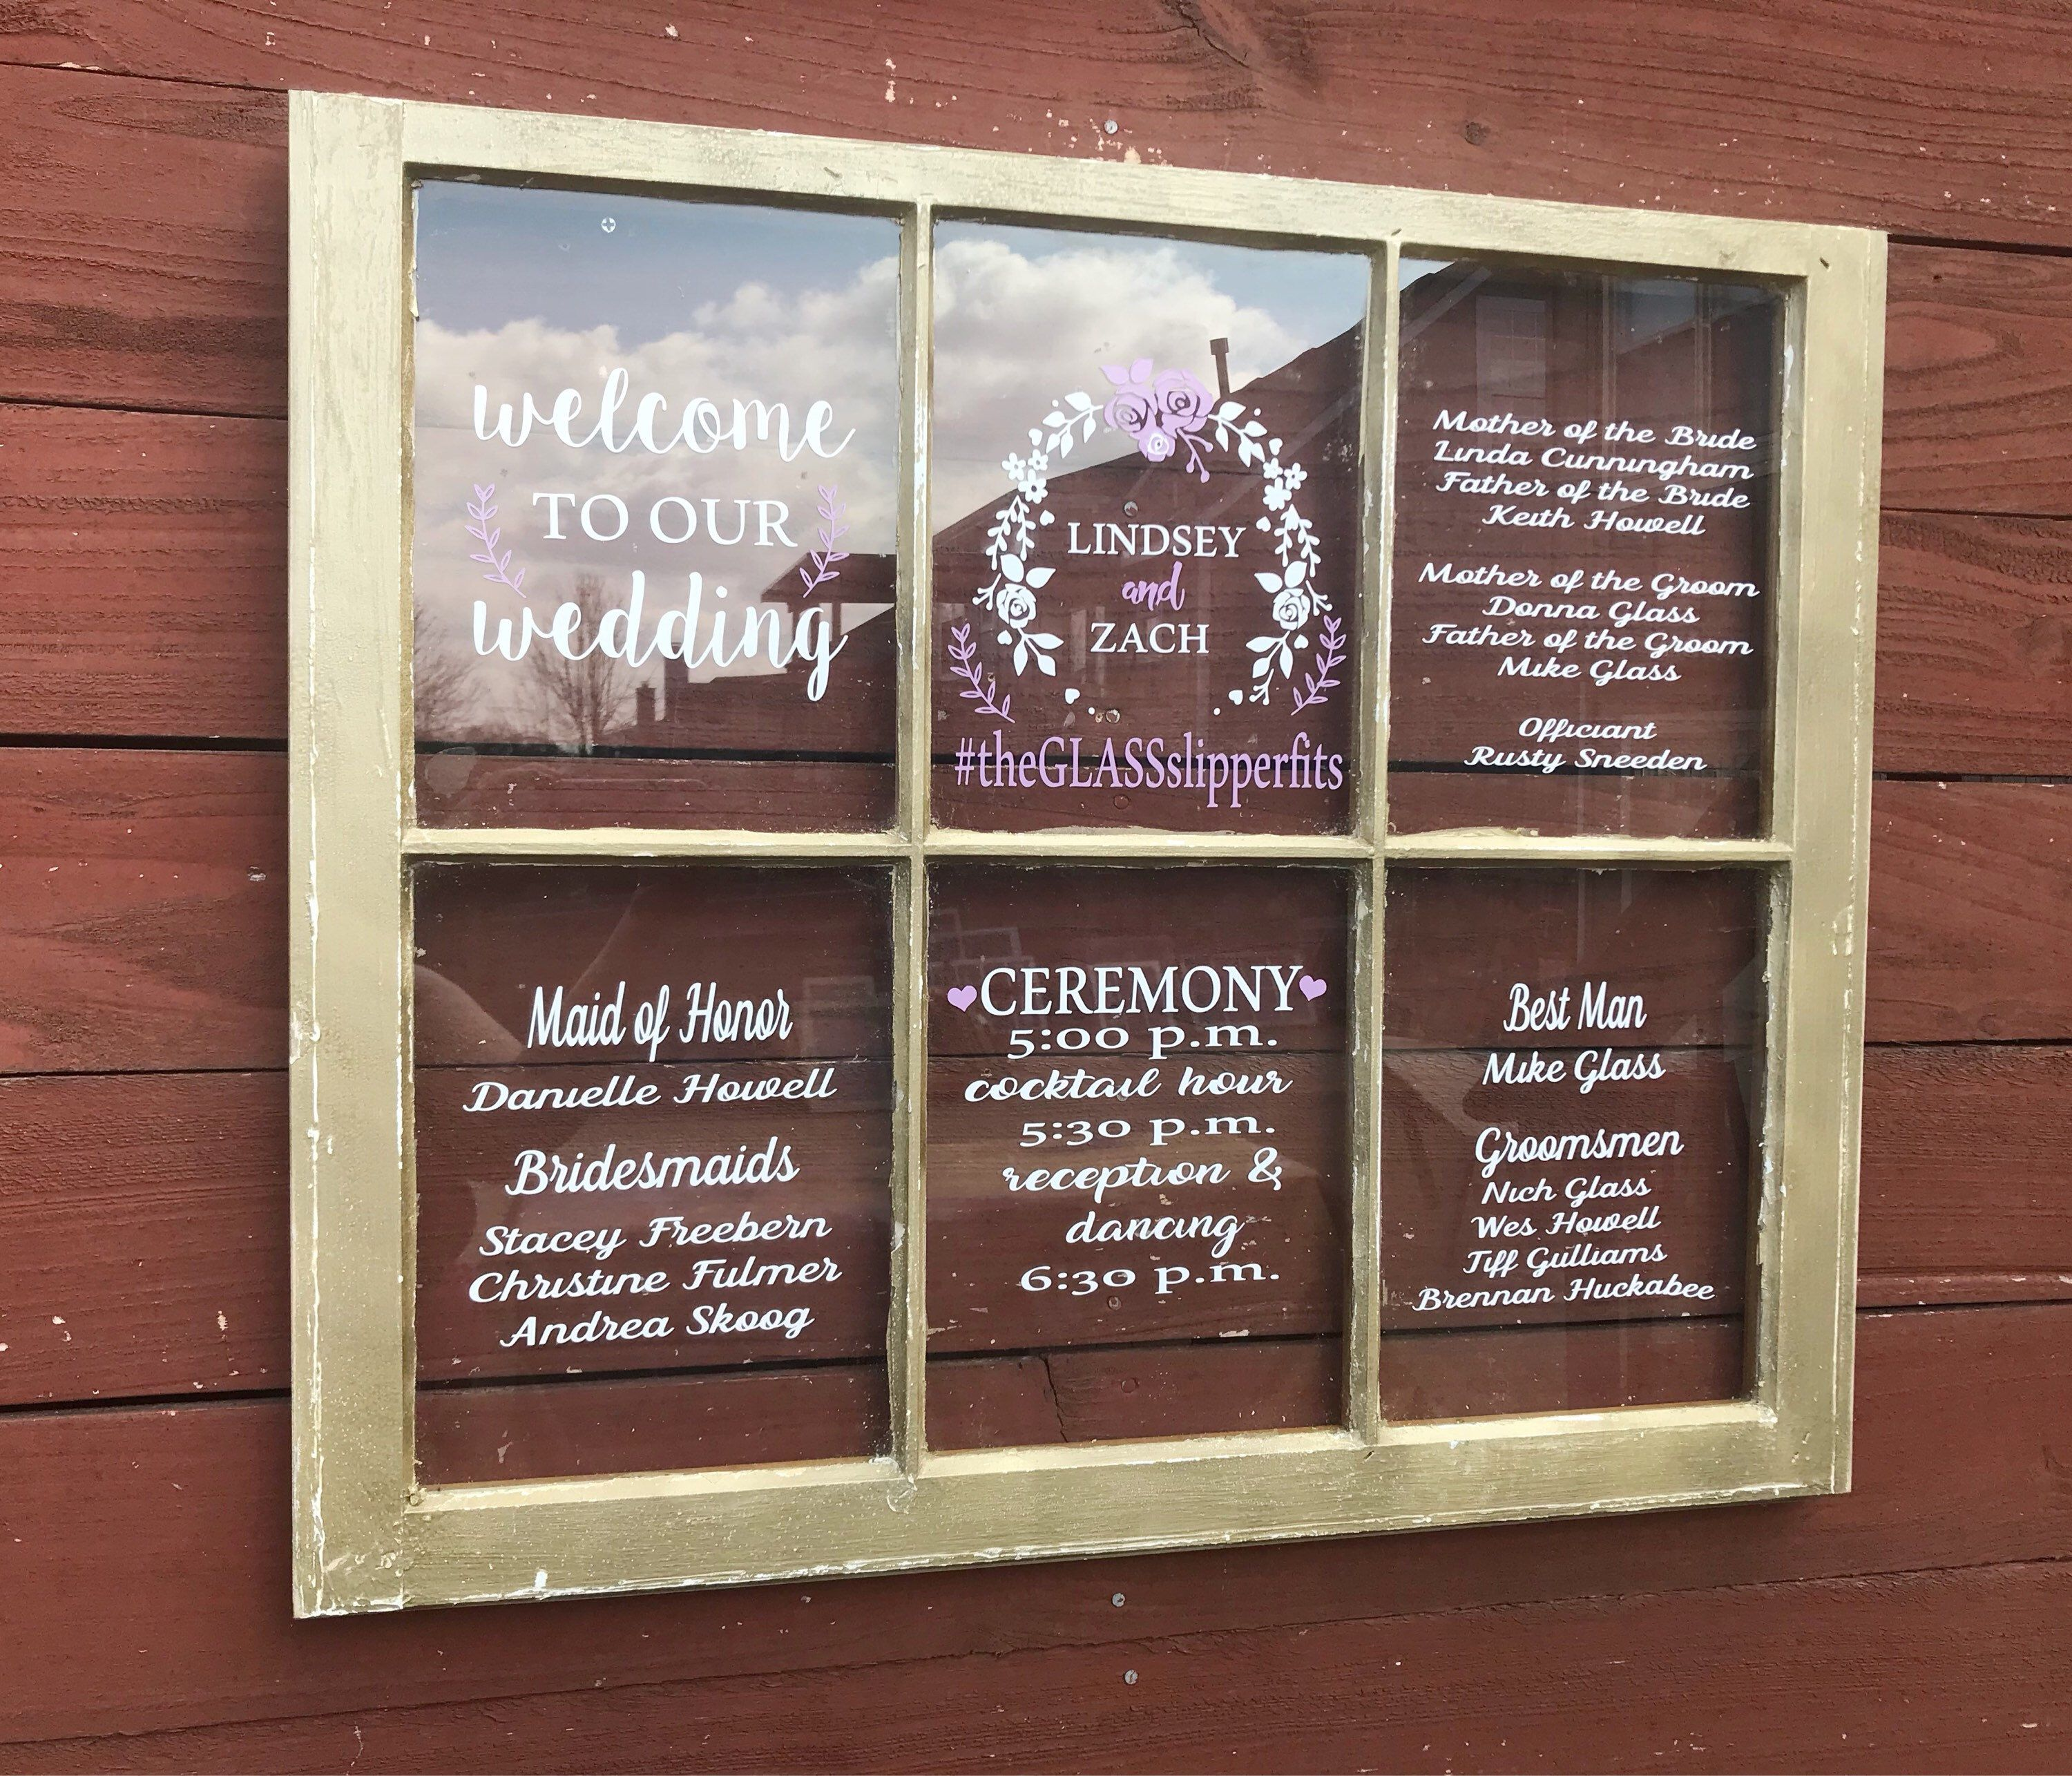 6 pane window ideas  pin by s and j bargain vault on awesome wedding gifts  pinterest